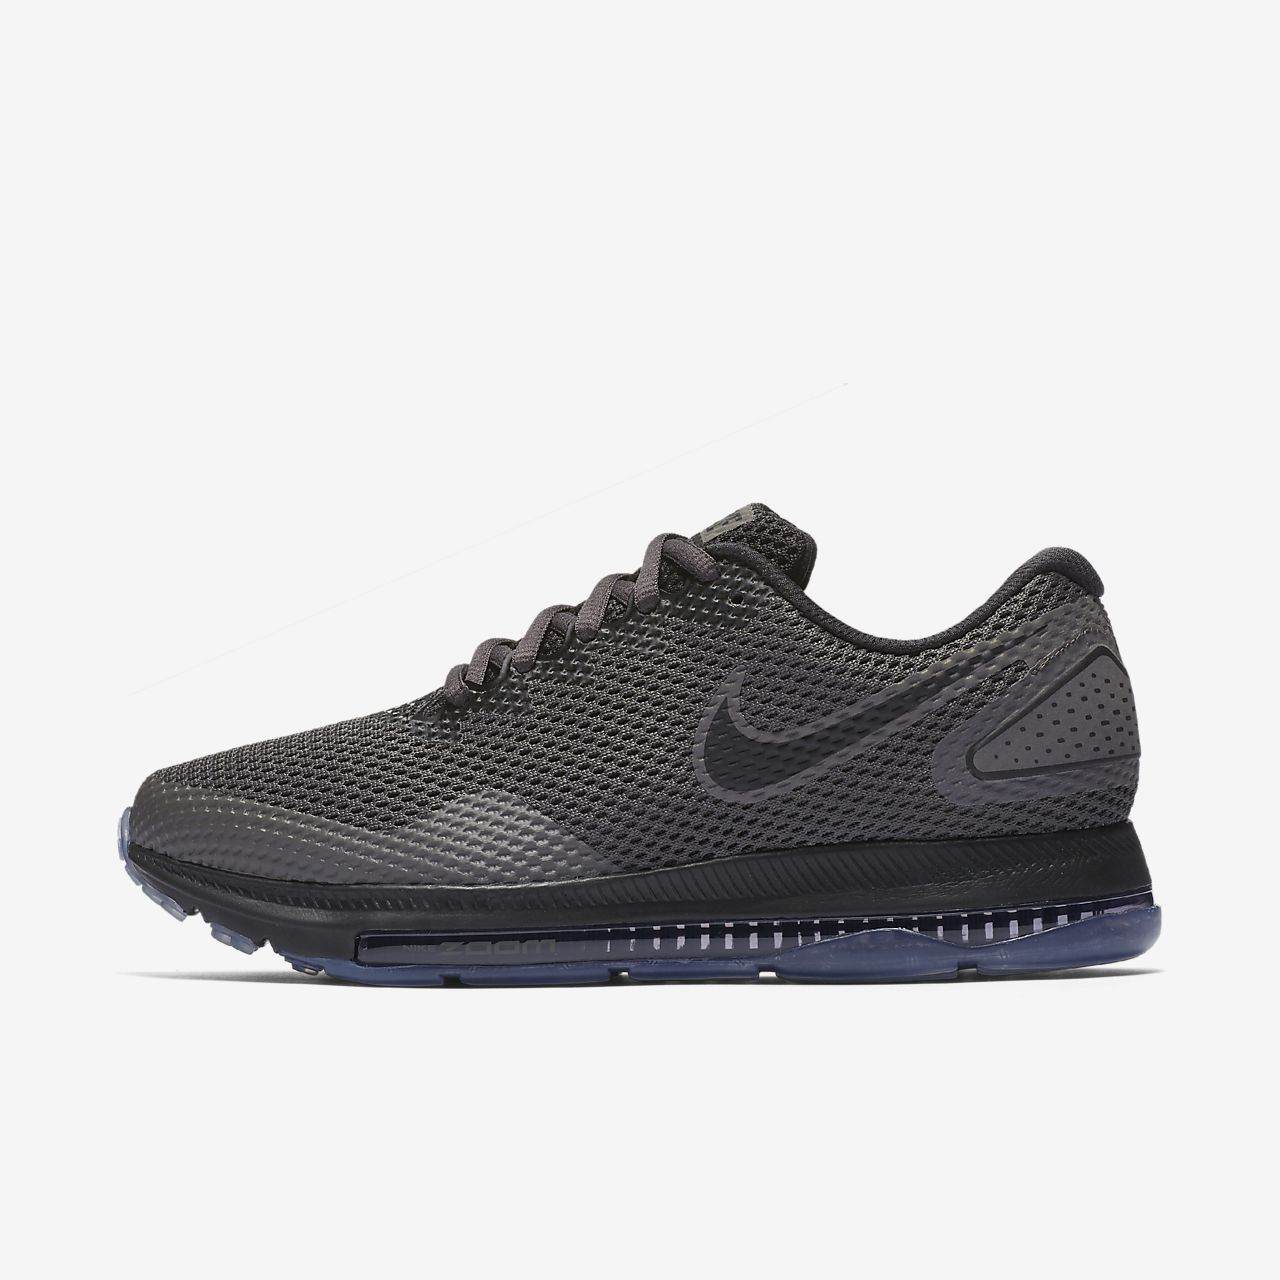 the best attitude b8a4e 380df ... Chaussure de running Nike Zoom All Out Low 2 pour Femme